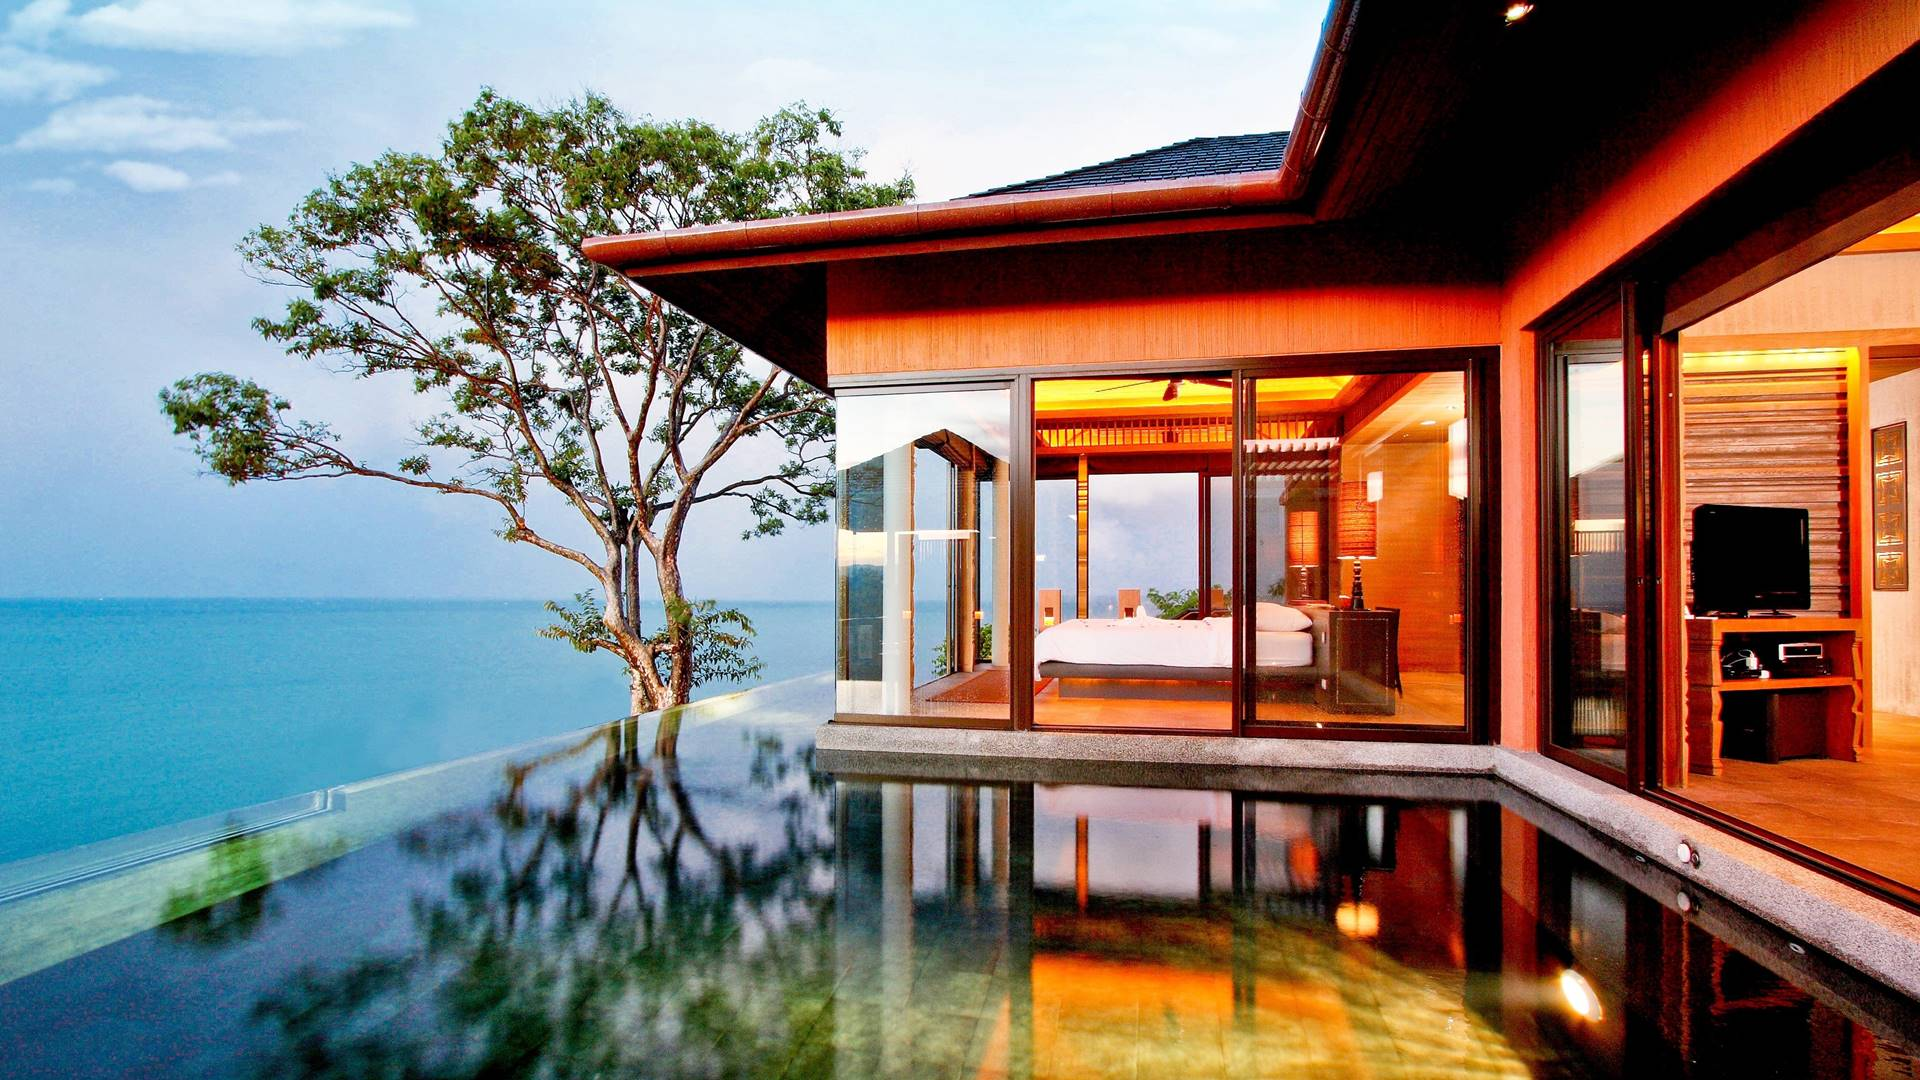 Best Luxury Hotel in Phuket